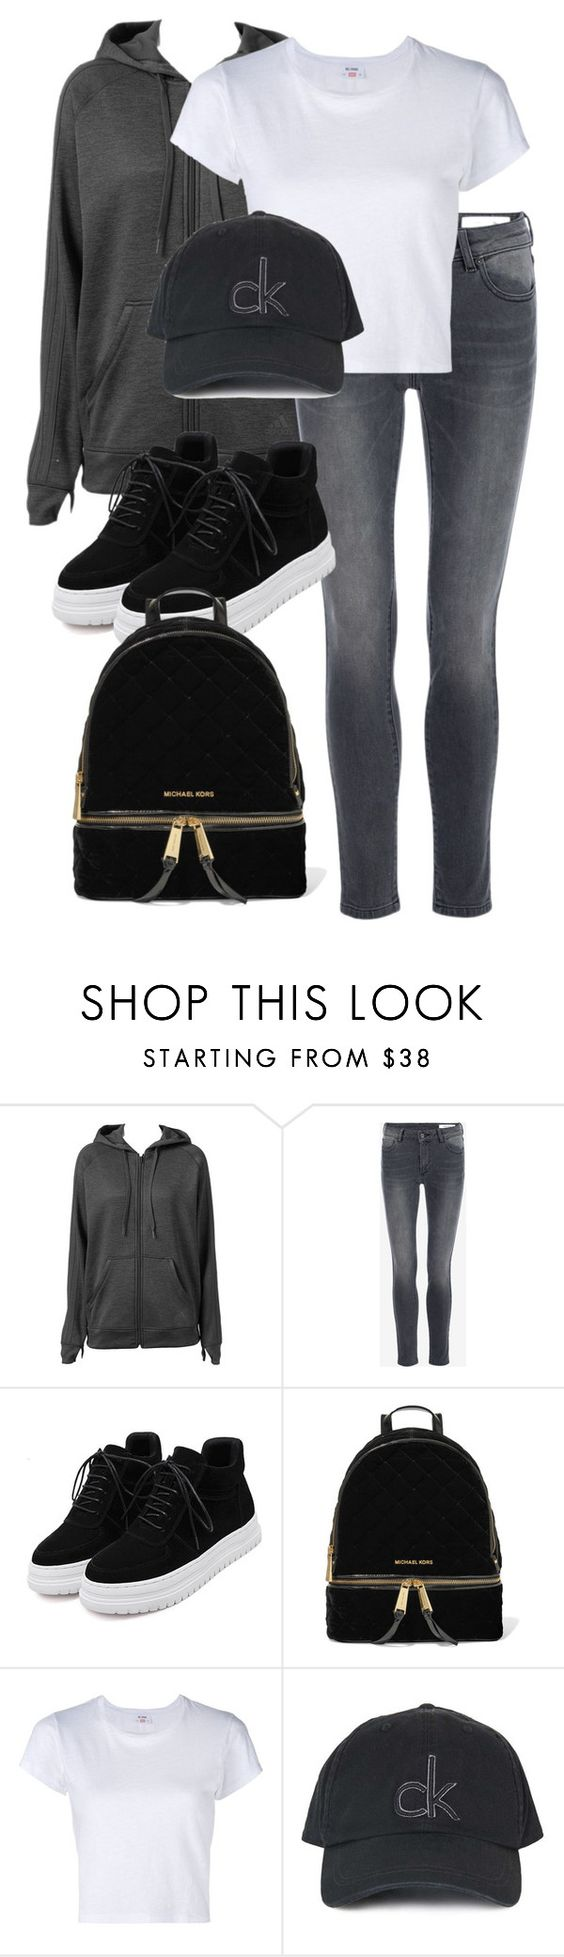 """""""Untitled #10237"""" by katgorostiza ❤ liked on Polyvore featuring adidas, MICHAEL Michael Kors, RE/DONE and Topshop"""